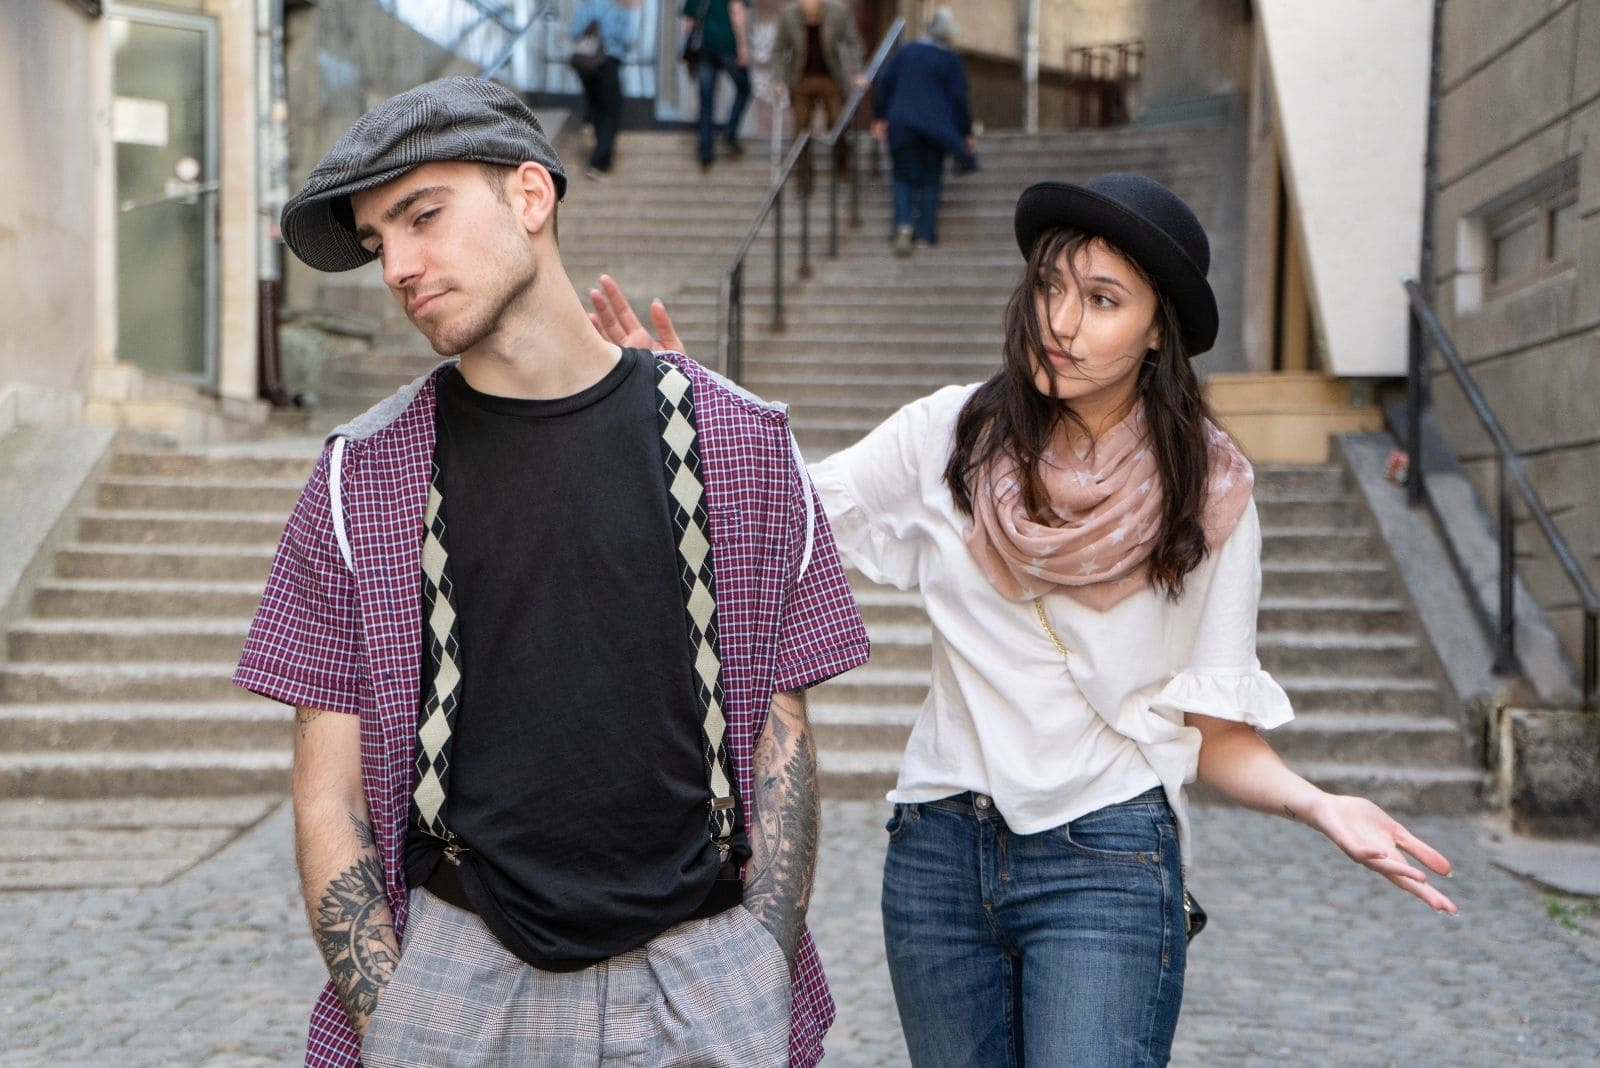 young couple walking in the city arguing or discussing